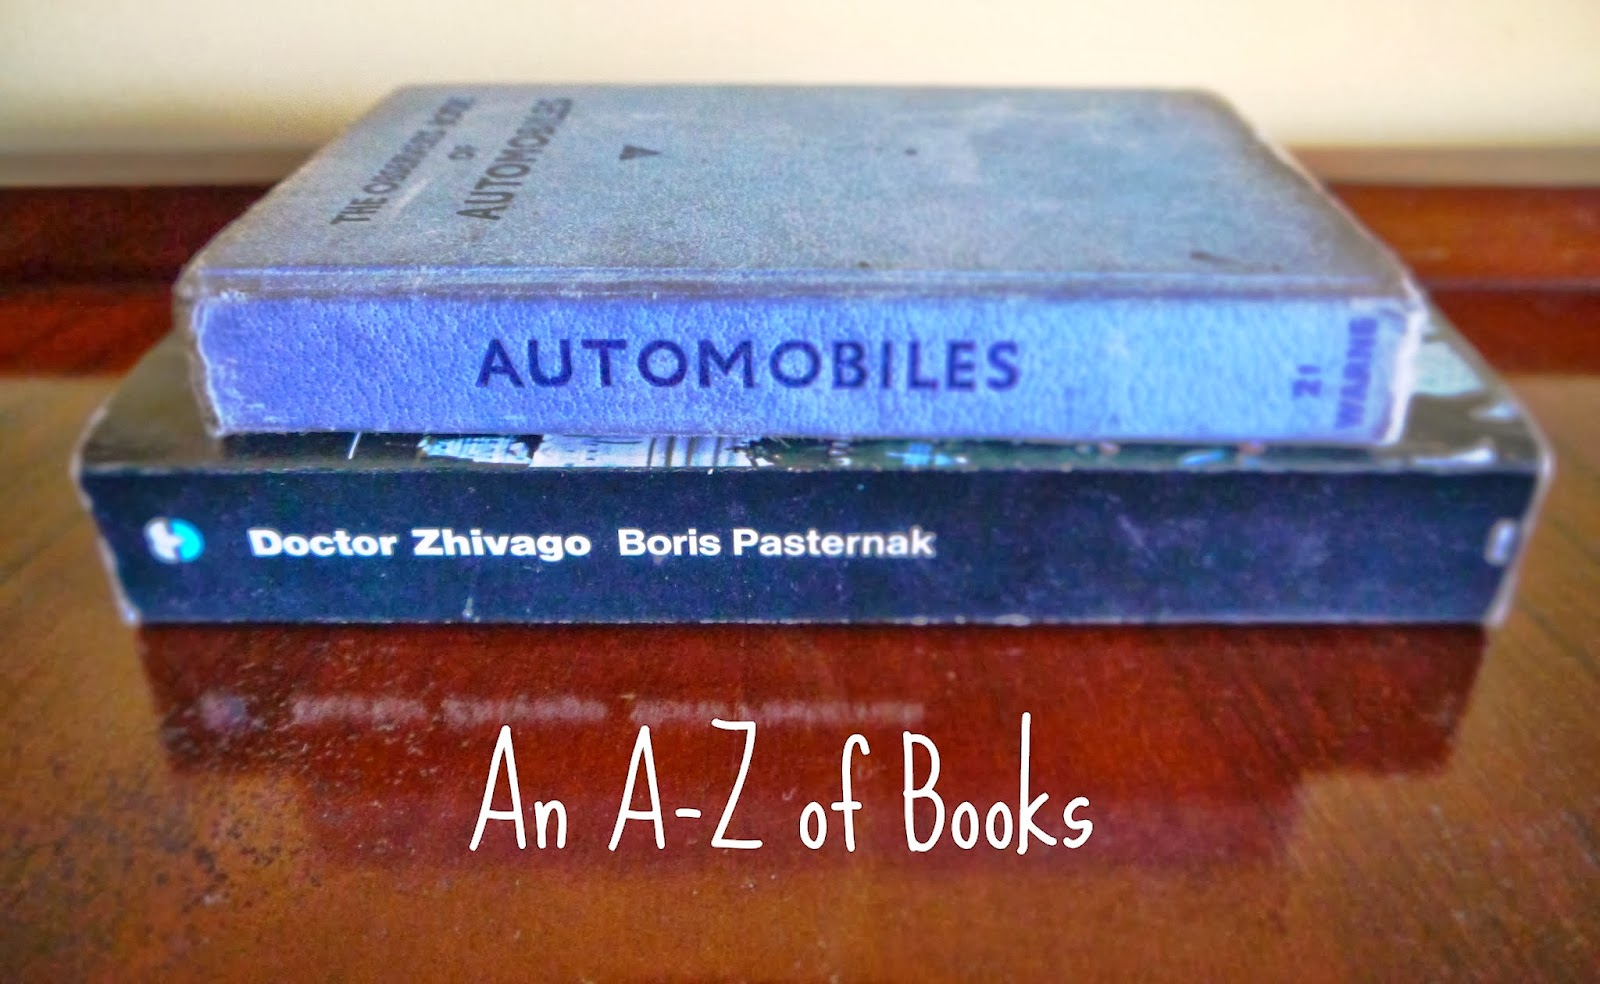 A-Z of Books